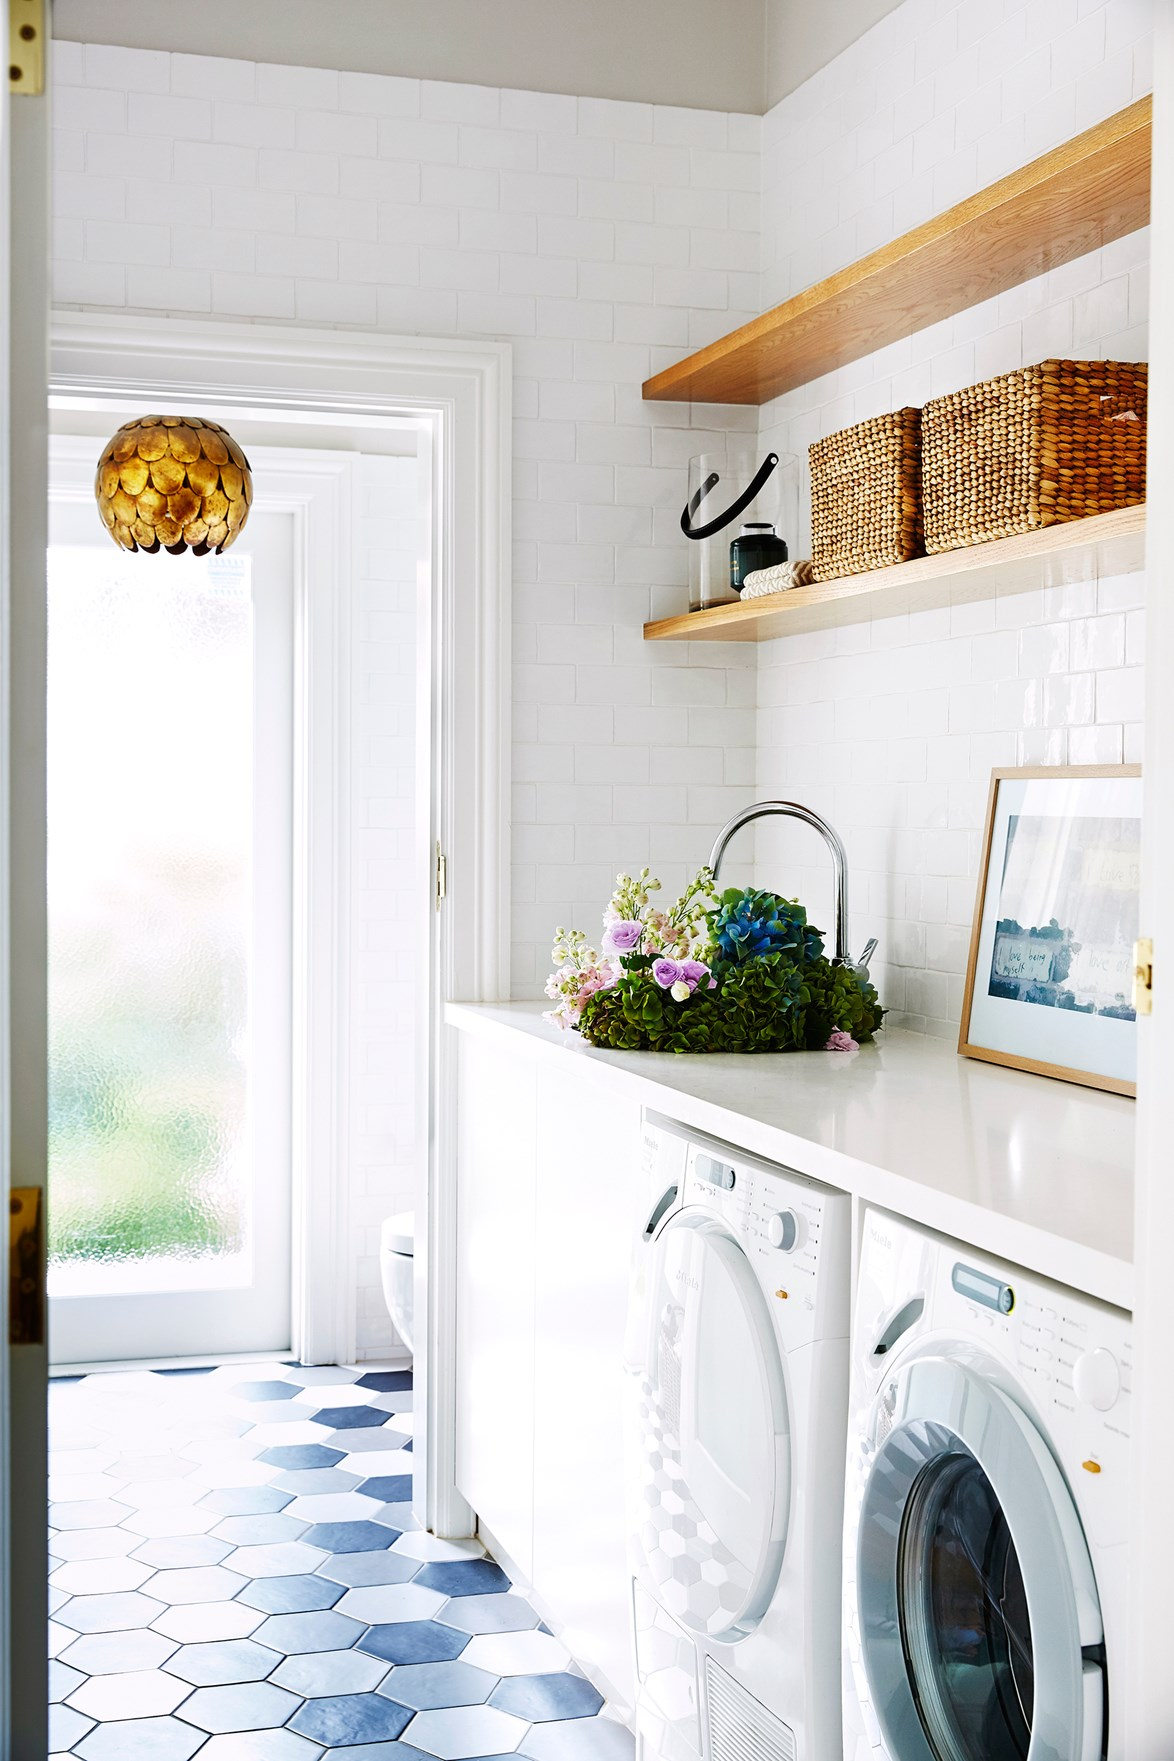 This laundry room is part of an extension to a Federation home, so interior designer Brett Mickan selected finishes and fittings to mimic its period detailing. Photo: John Paul Urizar